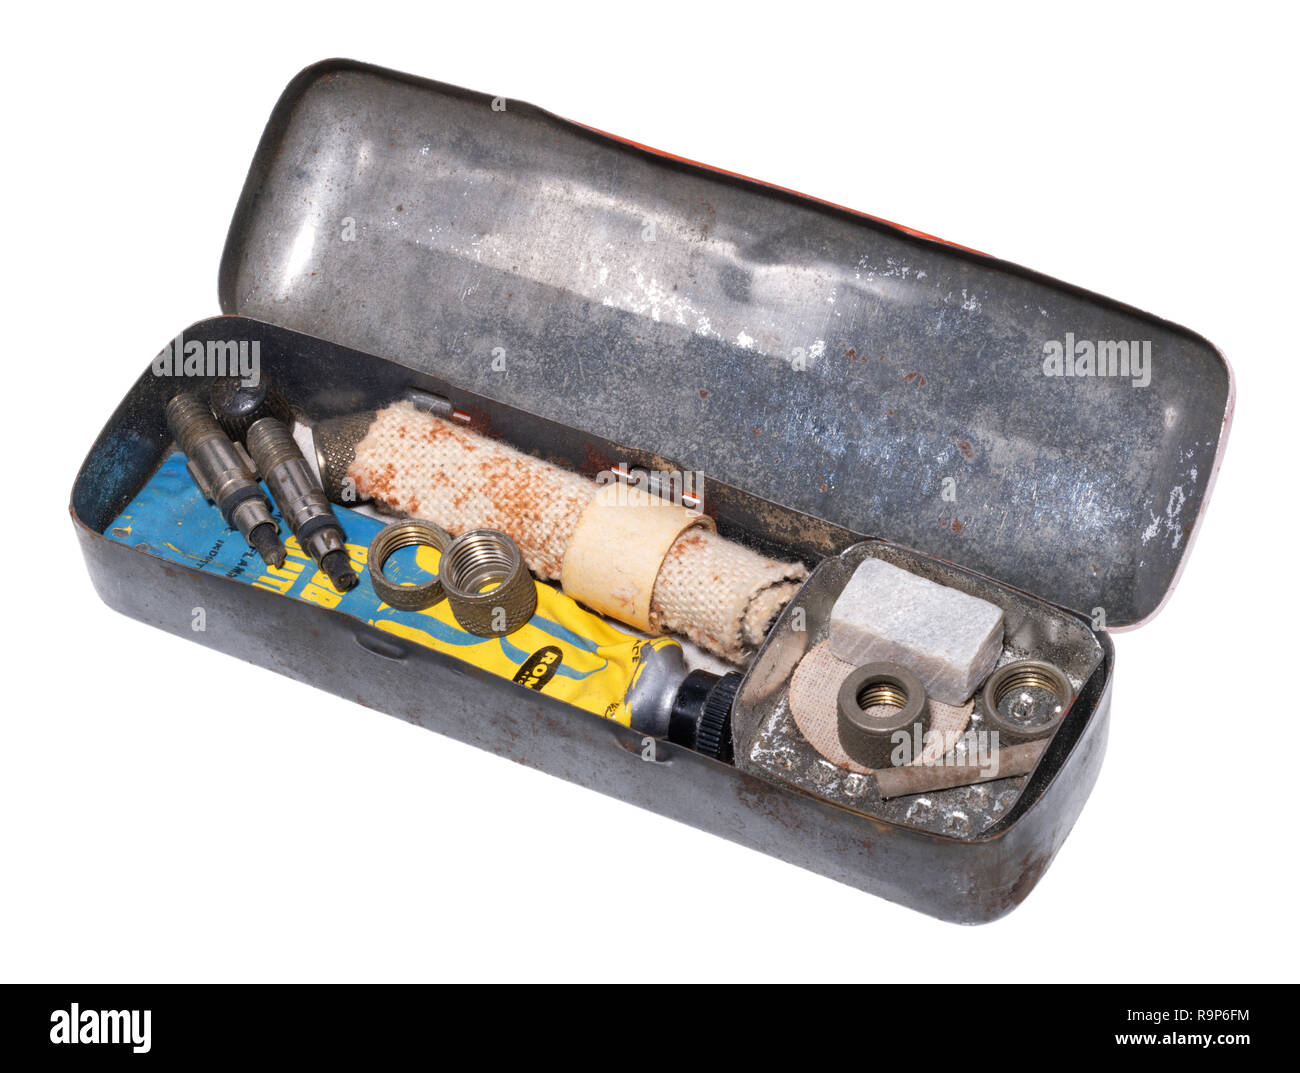 Puncture repair kits from the past. Stock Photo